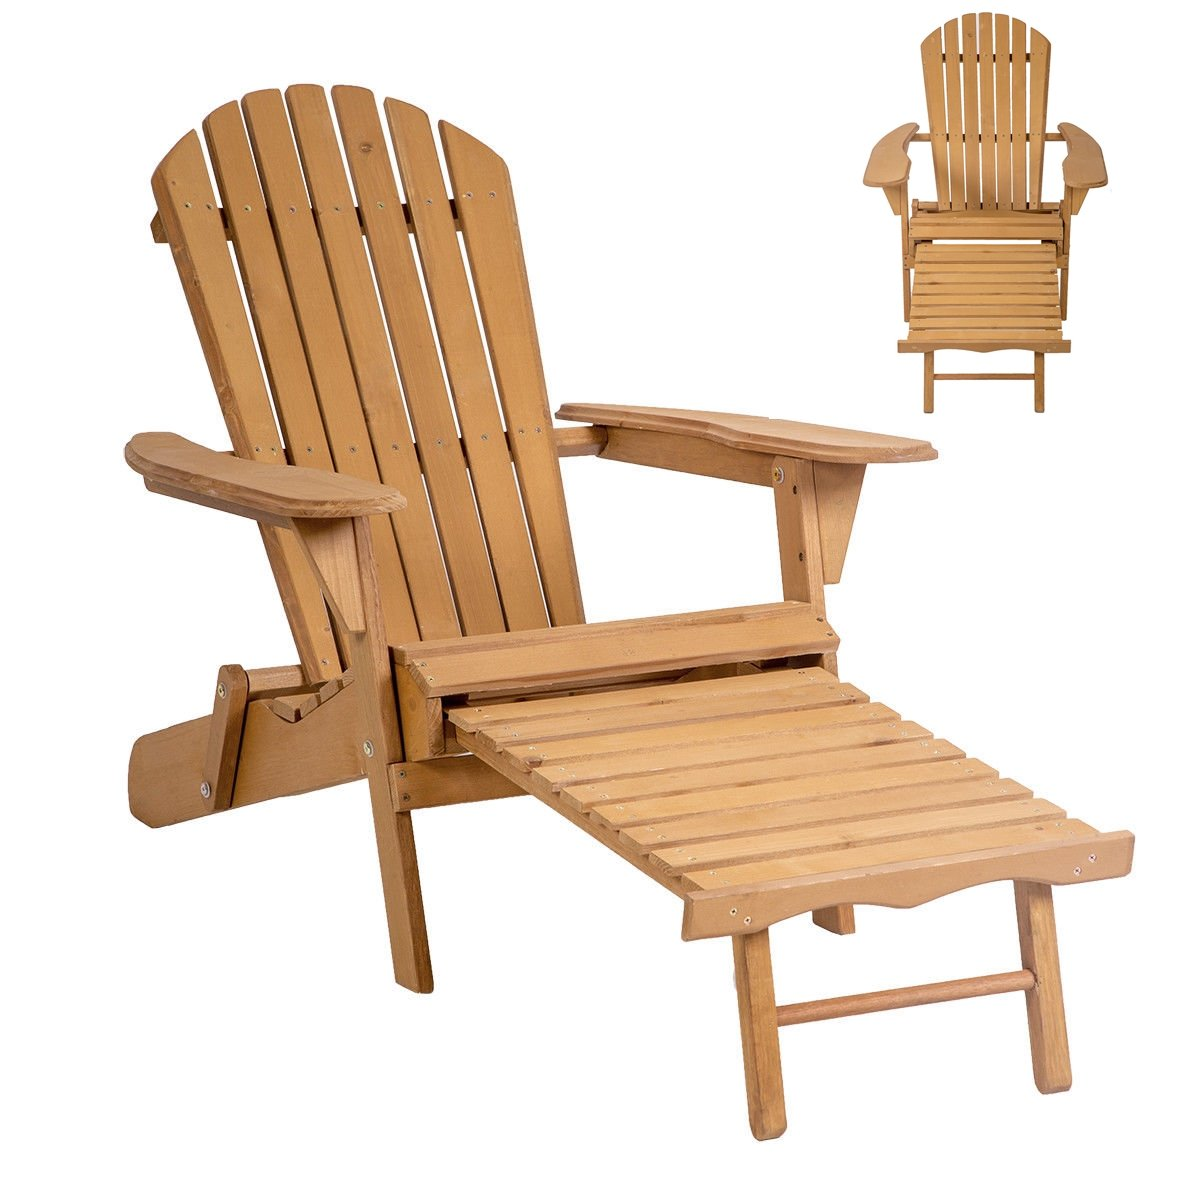 Amazon.com : Lapha' Wood Beach Chair Pool Chair Sunbathe Rustic Country  Style Outdoor Foldable w/Pull Out Patio Furniture : Garden & Outdoor - Amazon.com : Lapha' Wood Beach Chair Pool Chair Sunbathe Rustic